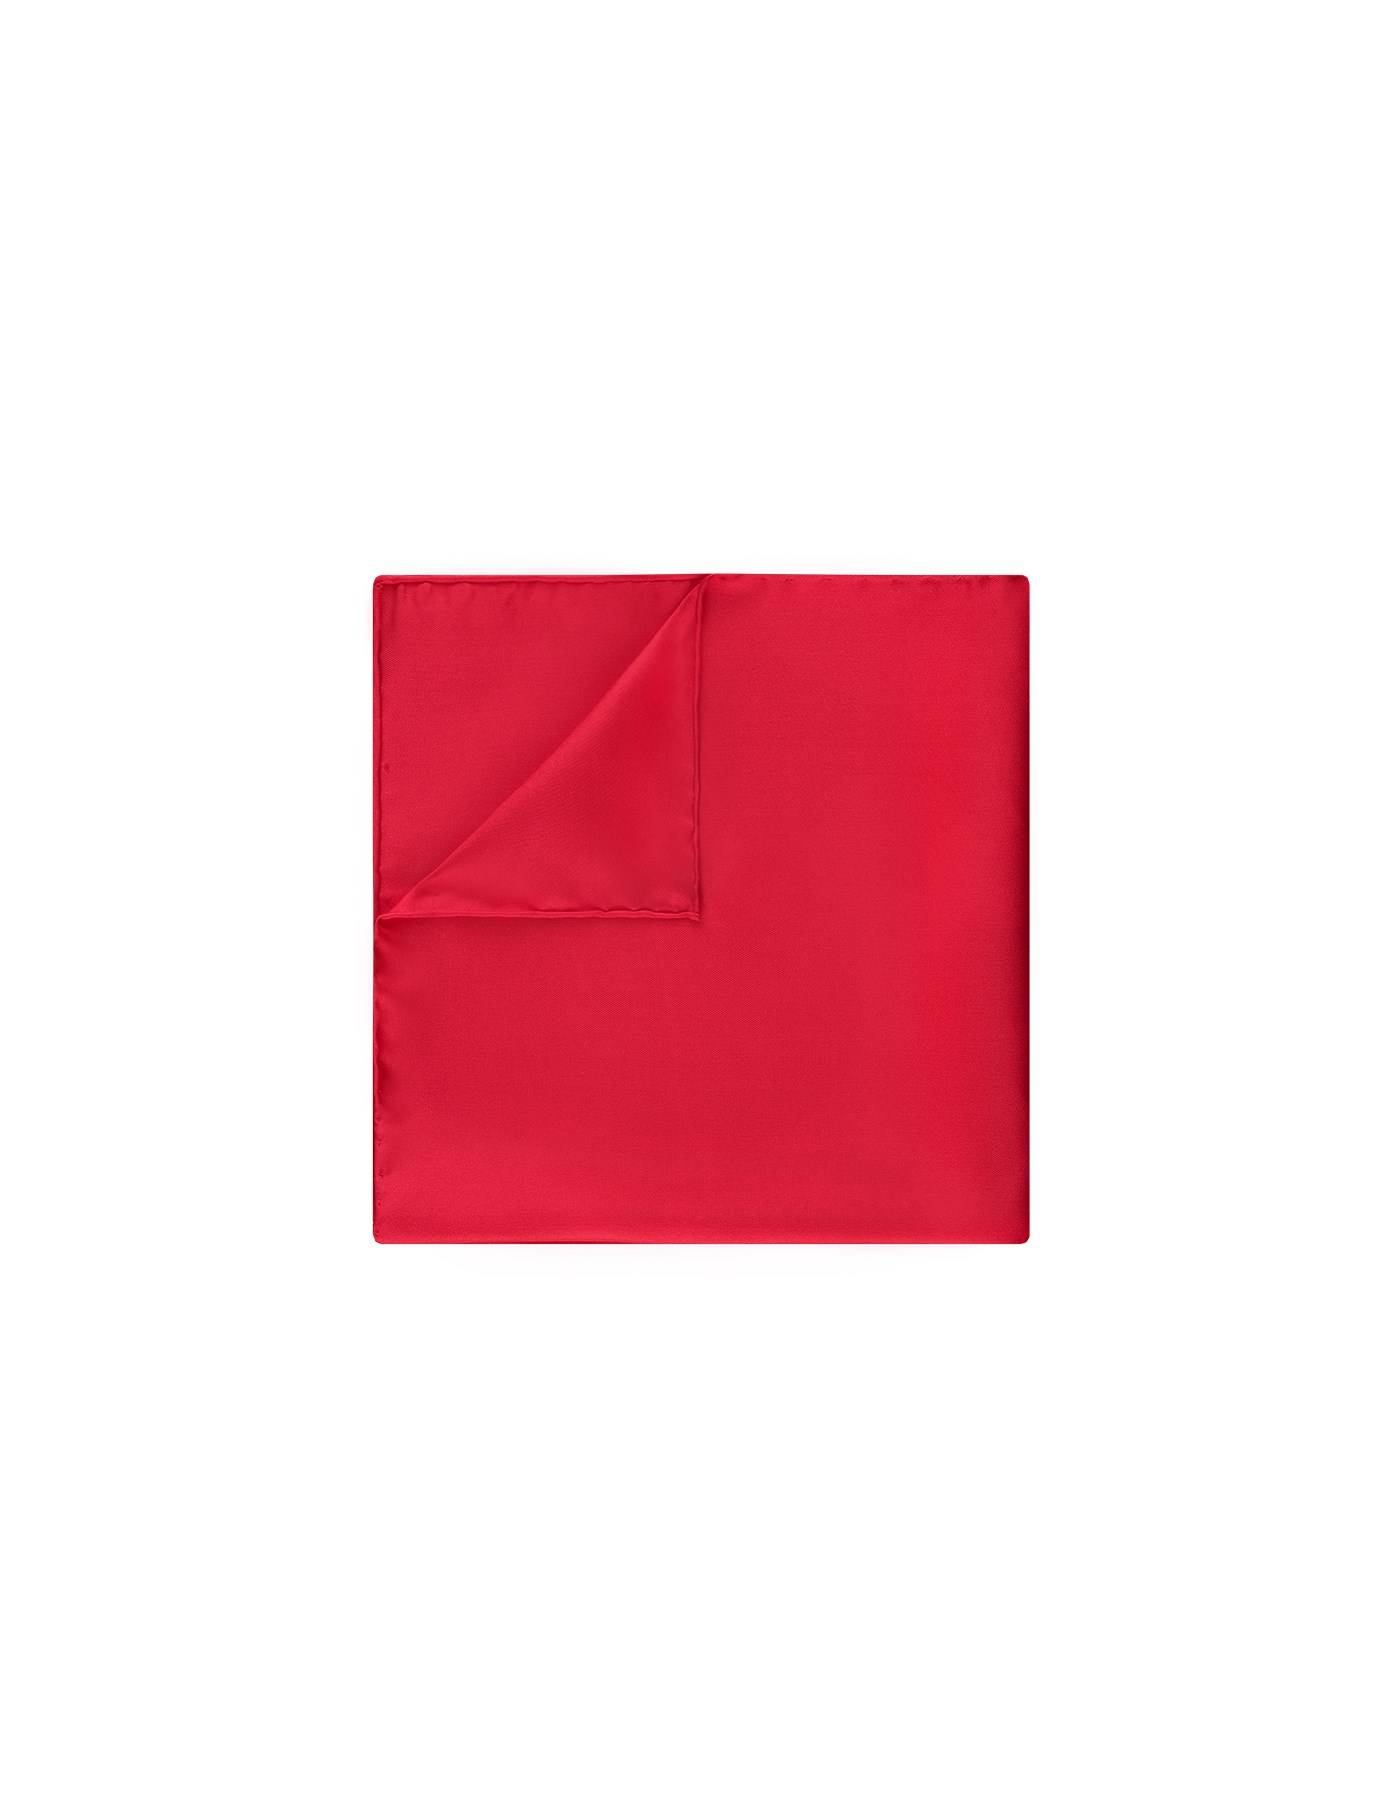 Hawes & Curtis Men's Pocket Square in Red 100% Silk Hawes & Curtis